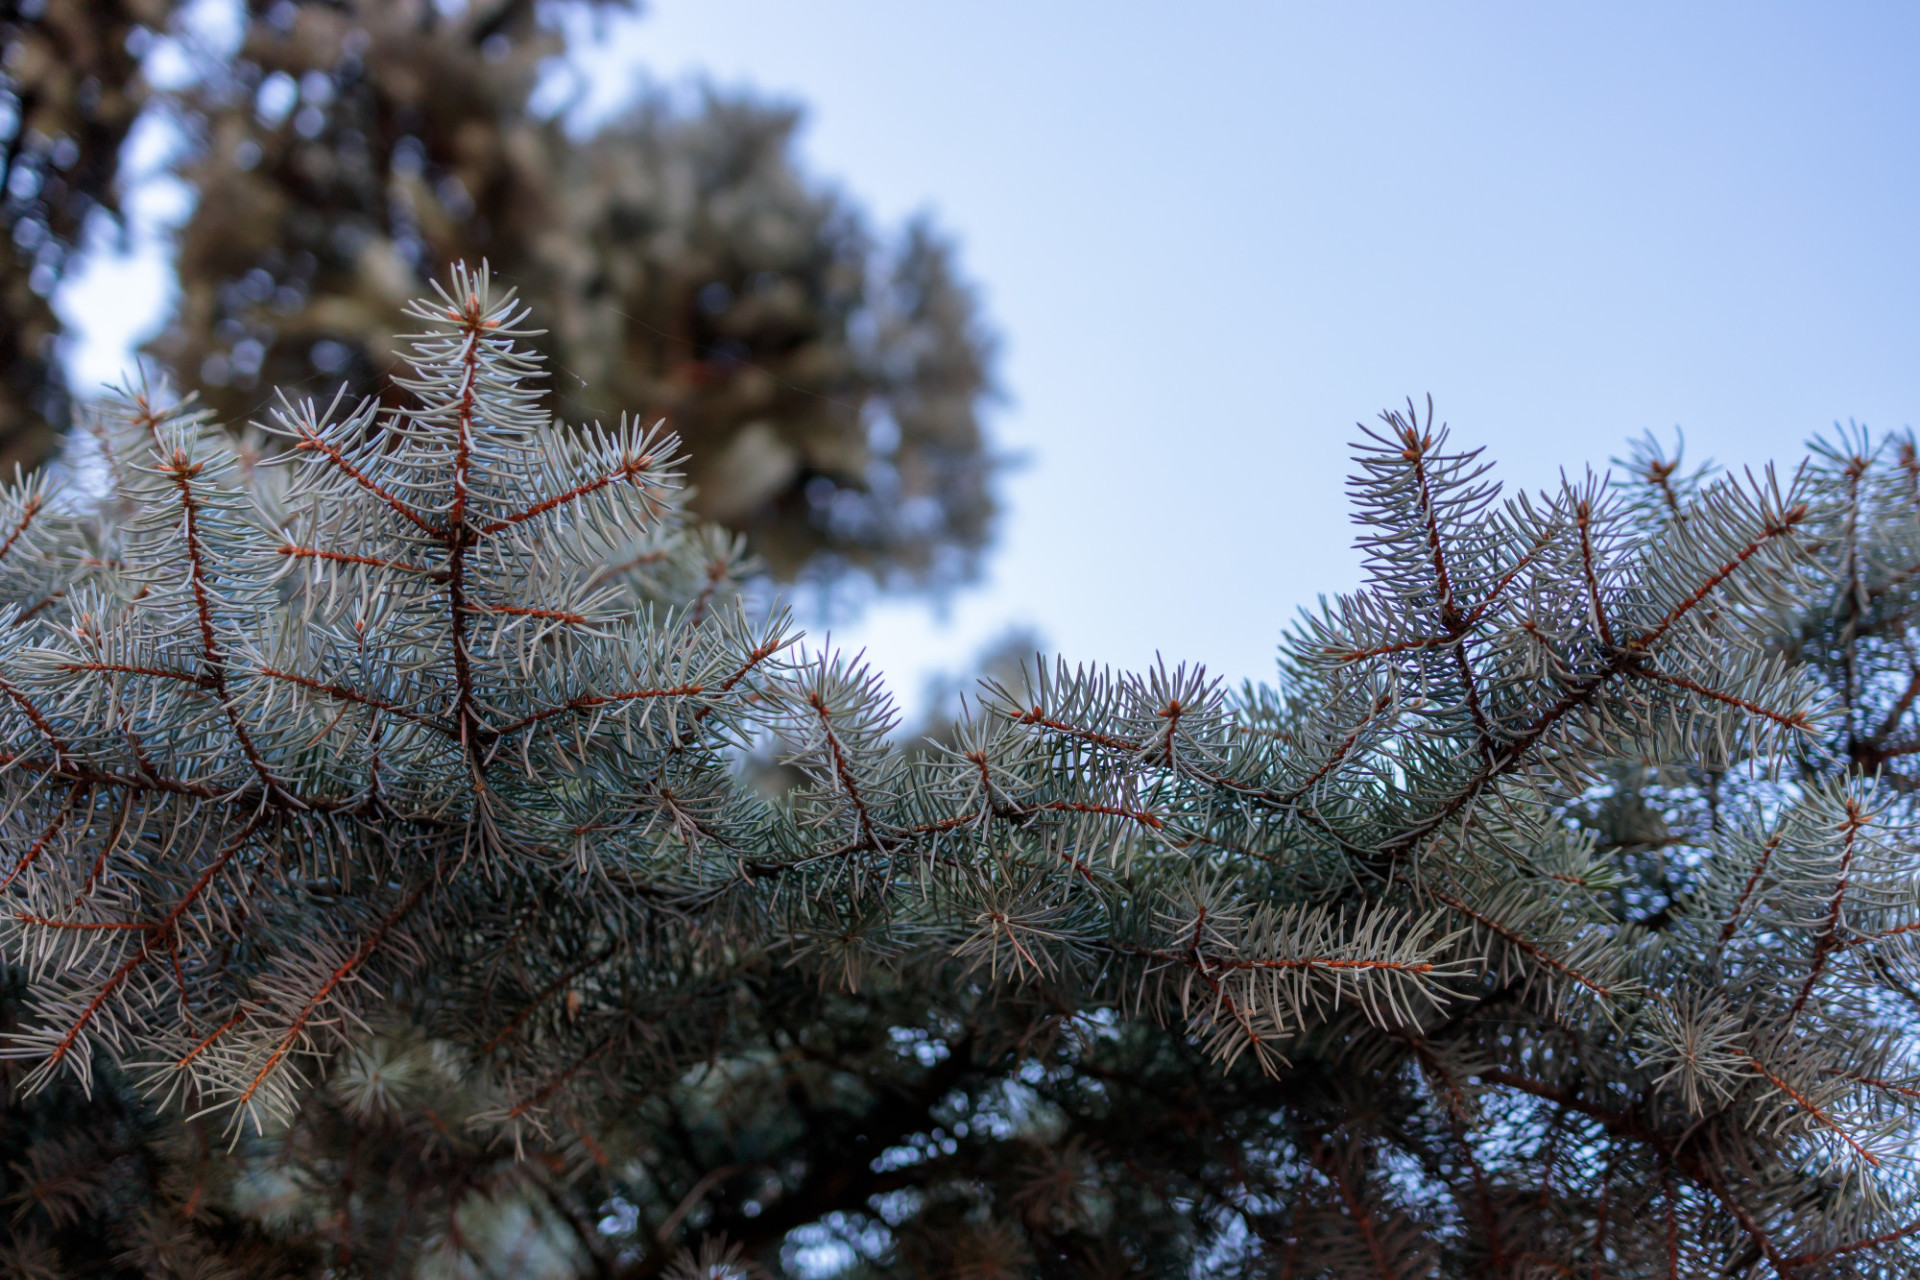 Looking up at a blue spruce